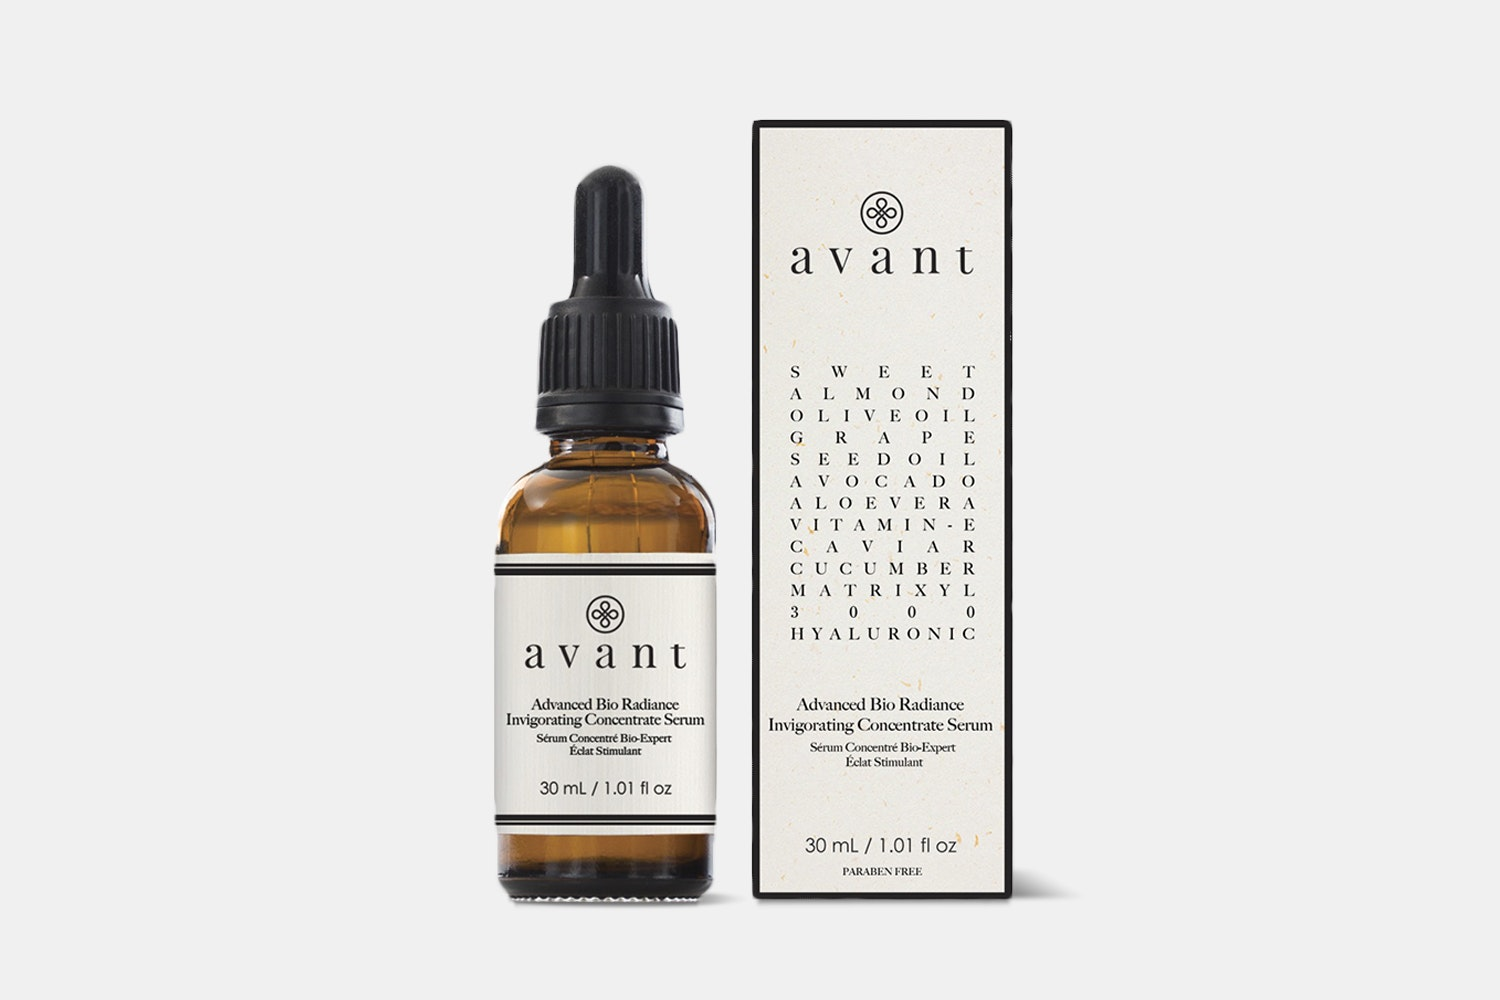 30ml Advanced Bio Radiance Invigorating Concentrate Serum (+ $15)